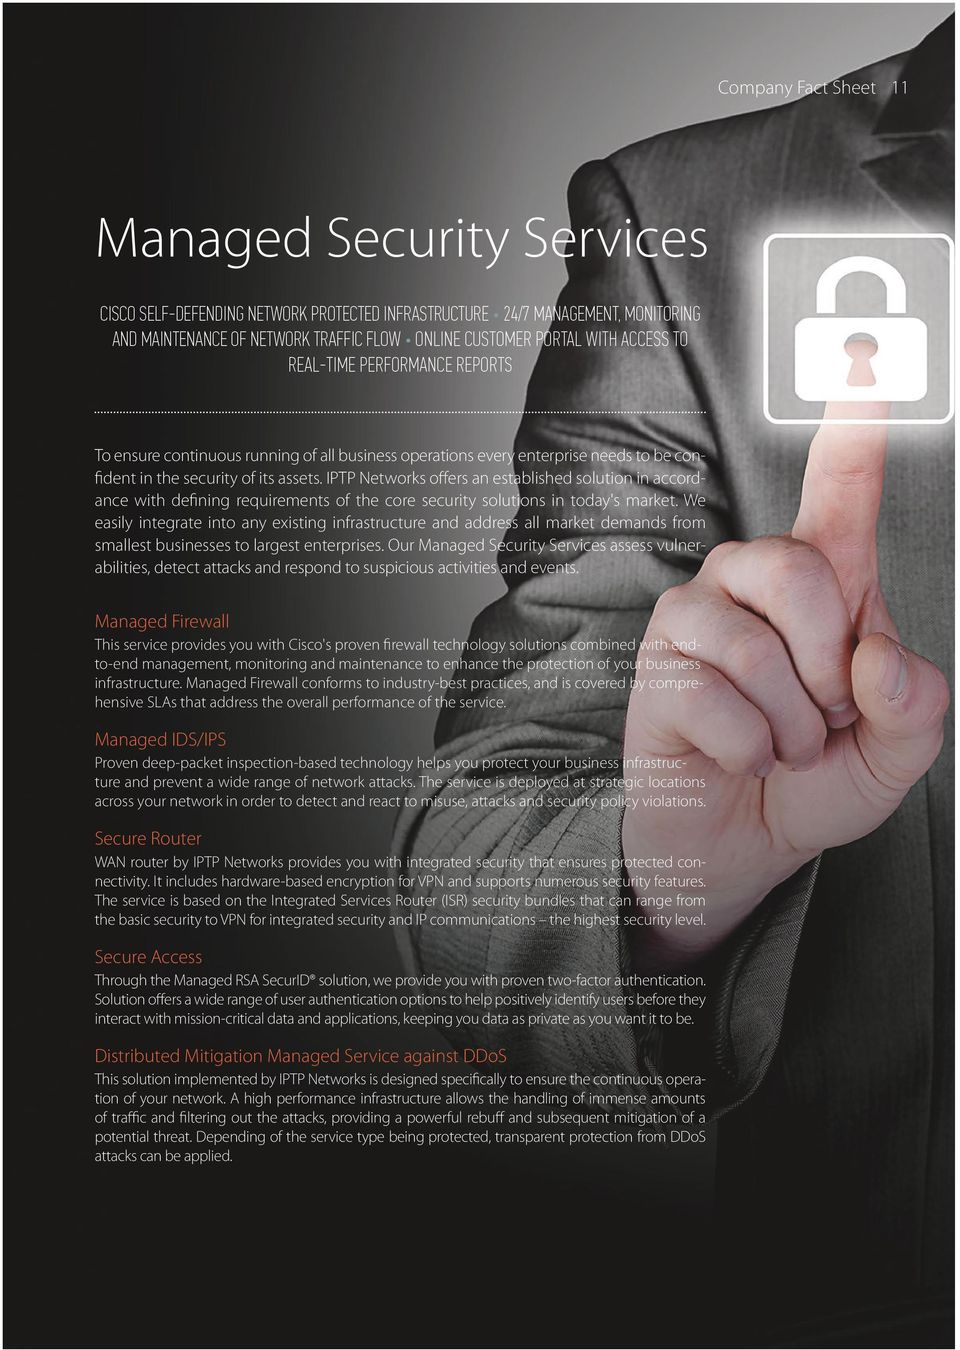 offers an established solution in accordance with defining requirements of the core security solutions in today's market.